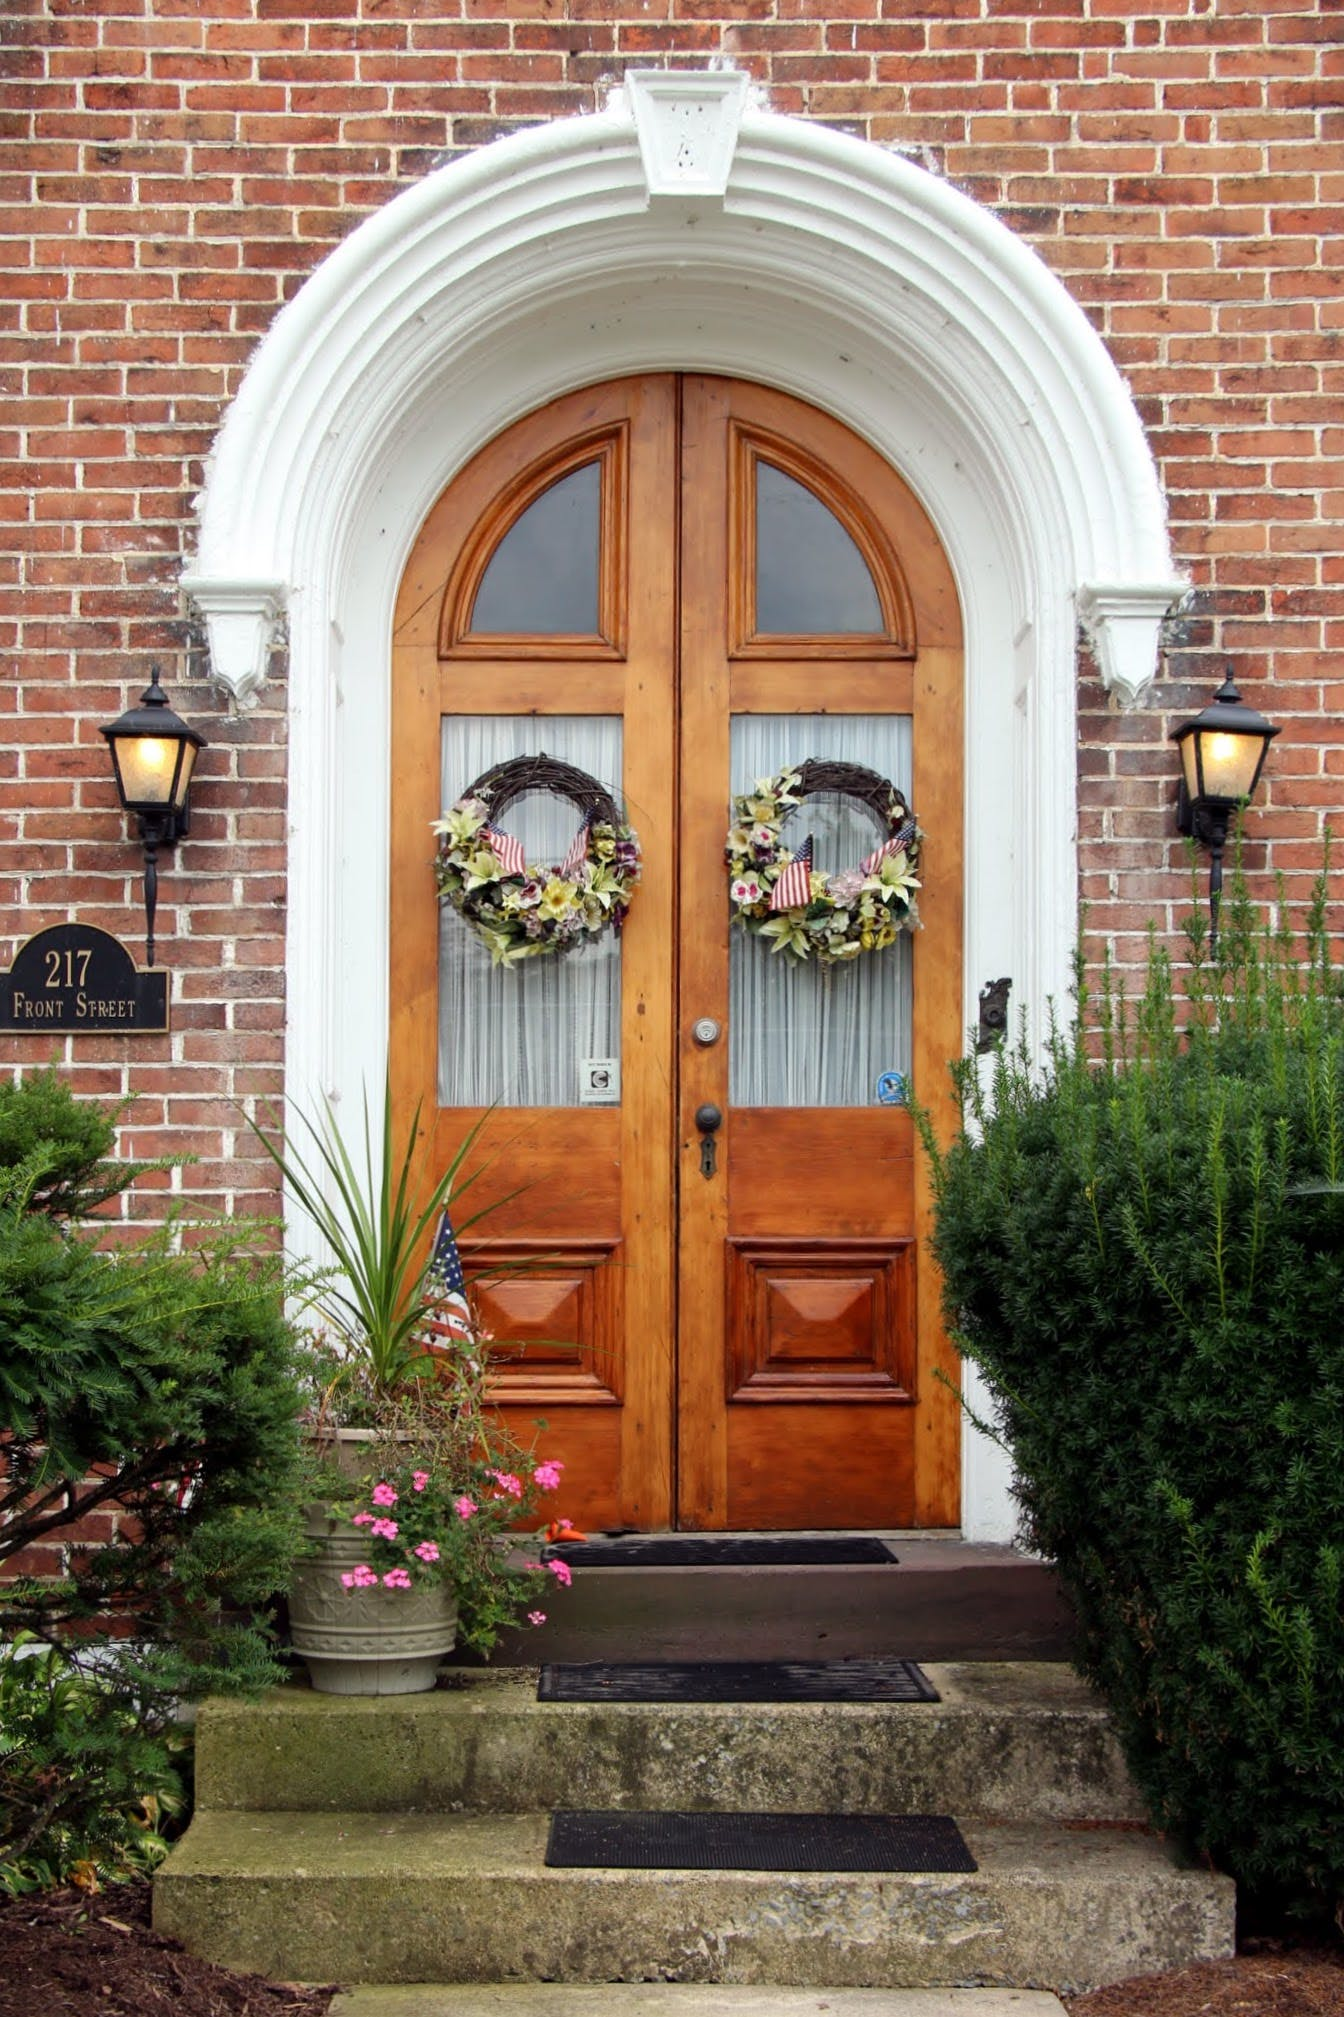 Free stock photo of door, entrance, Historic Building